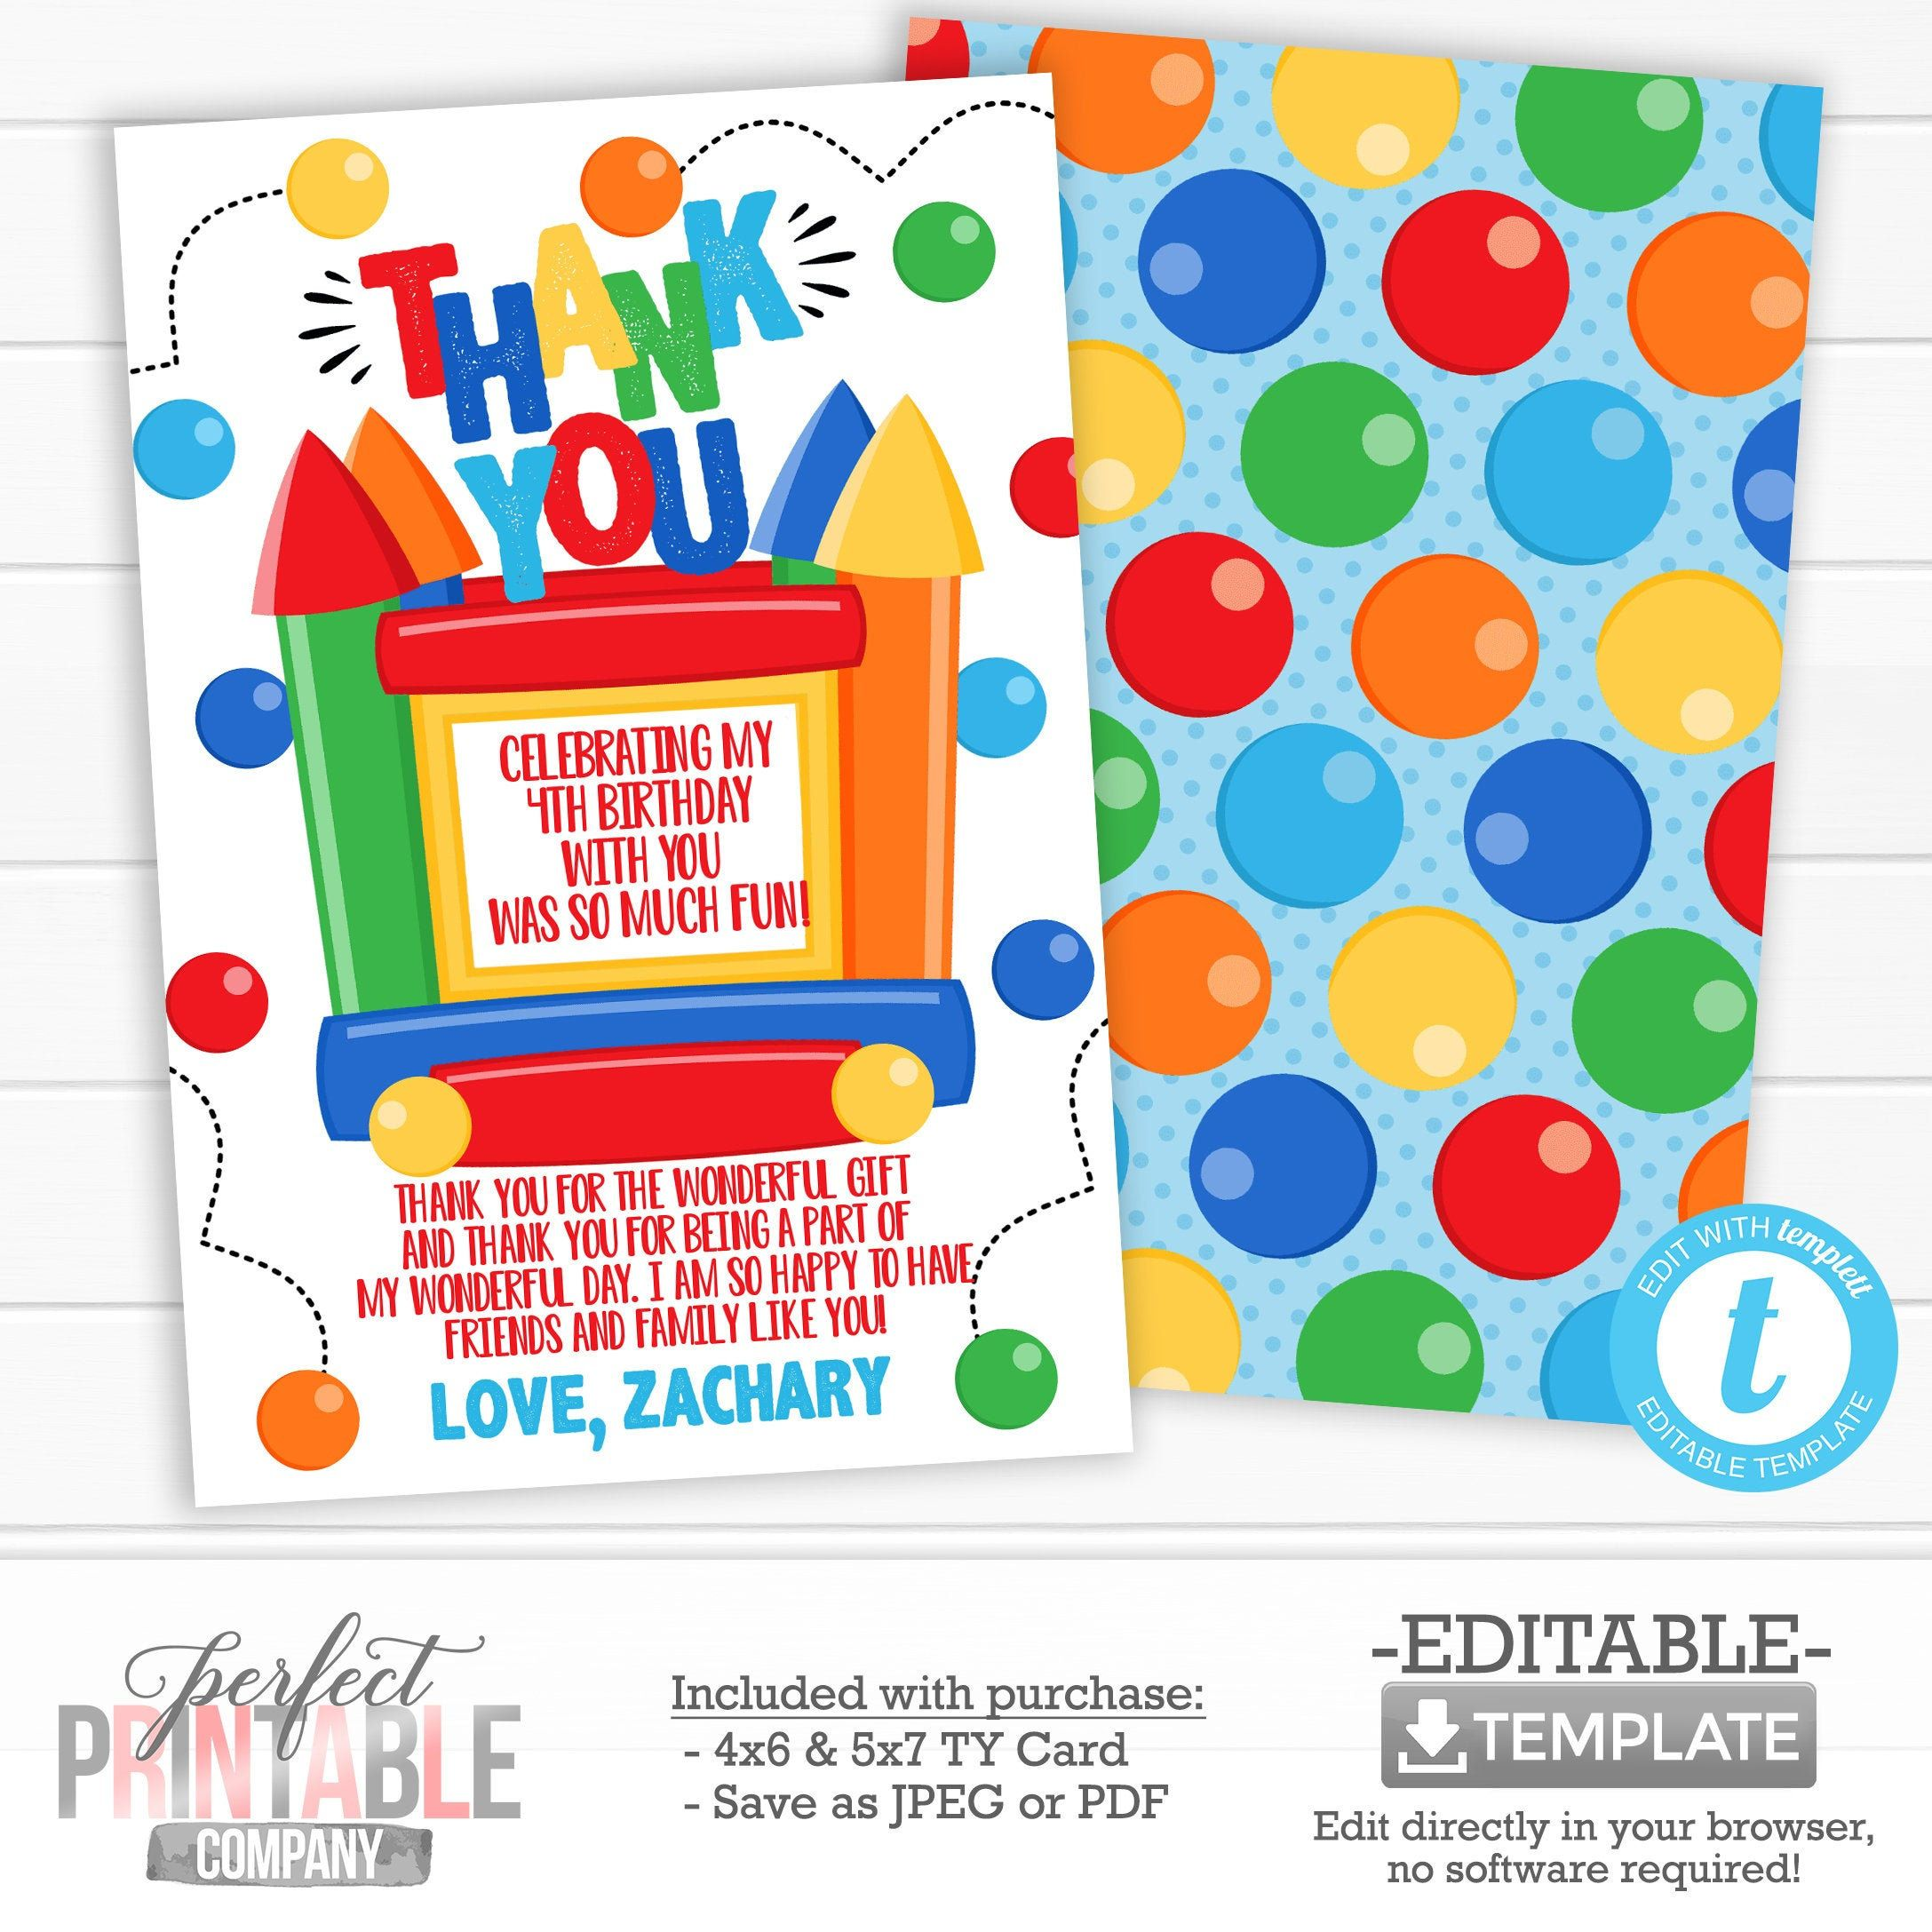 Bounce House Thank You Card Bounce House Thank You Note Bounce House Birthday Party T Print Thank You Cards Bounce House Birthday Party Bounce House Birthday